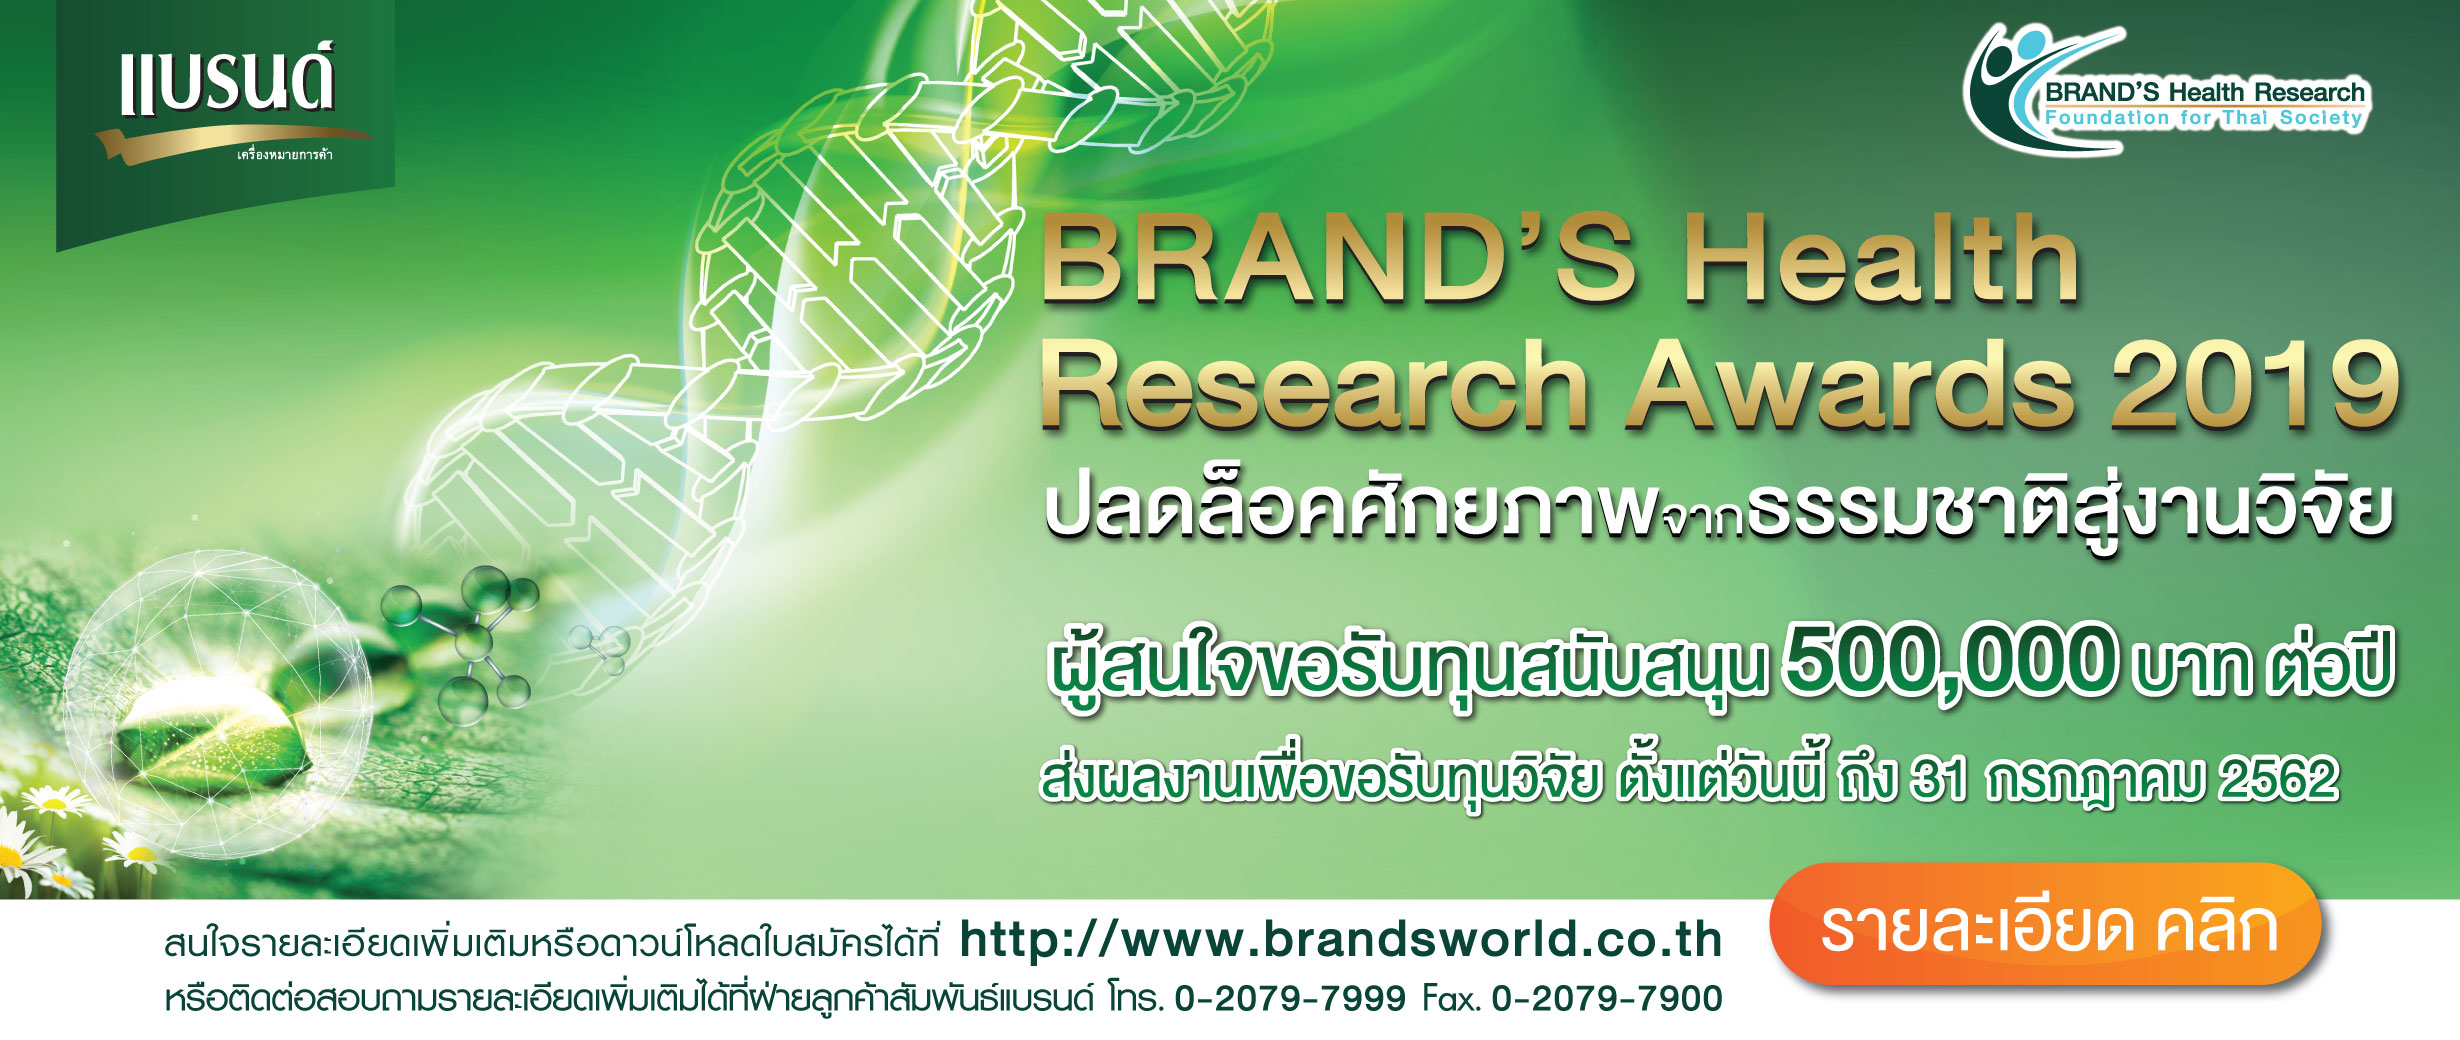 BRAND'S Health Research Awards 2019